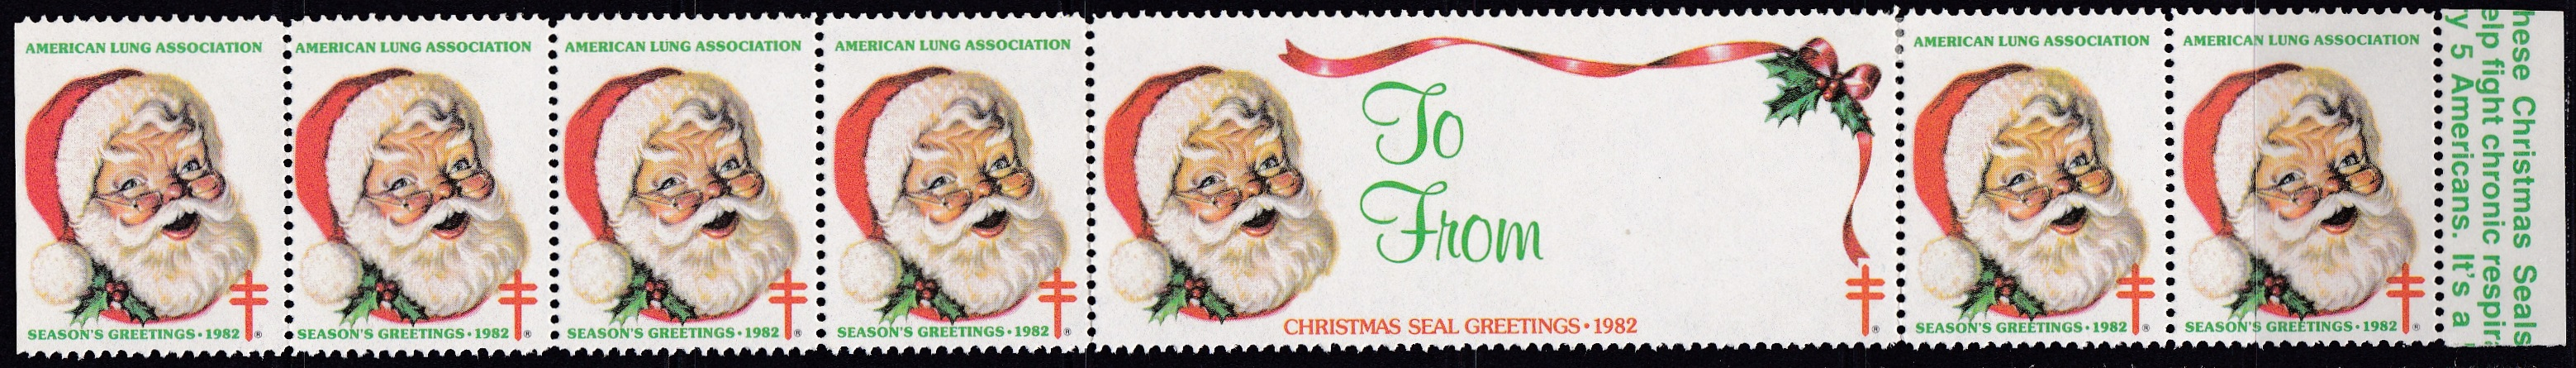 1982 Santa's Face Christmas Seal Design Experiment